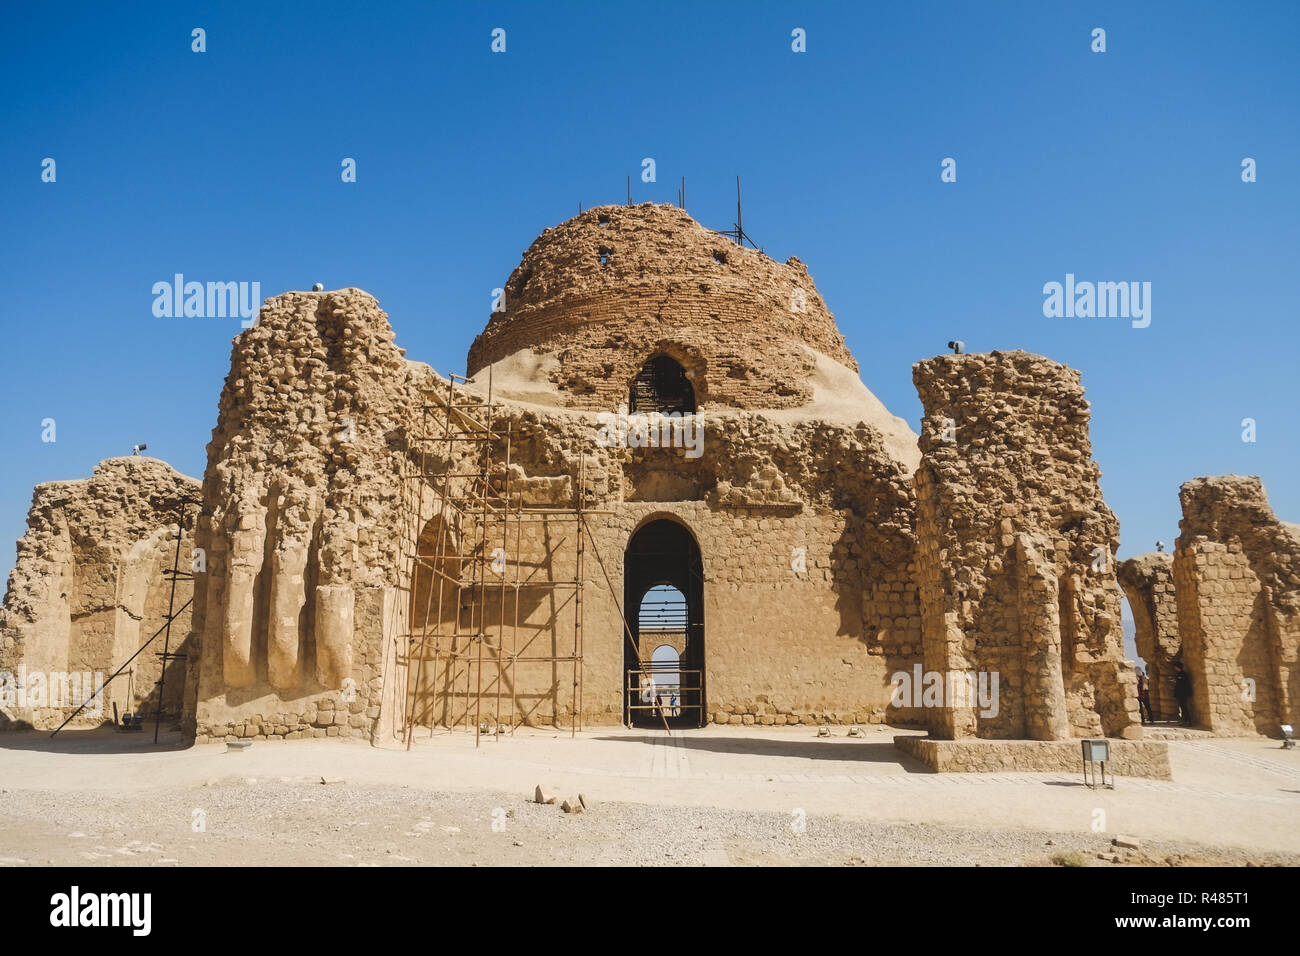 Sarvestan Palace is a Sassanid-era building, was built in the 5th century AD. The building made of baked brick, stone and mortar.  Sarvestan, Iran. - Stock Image